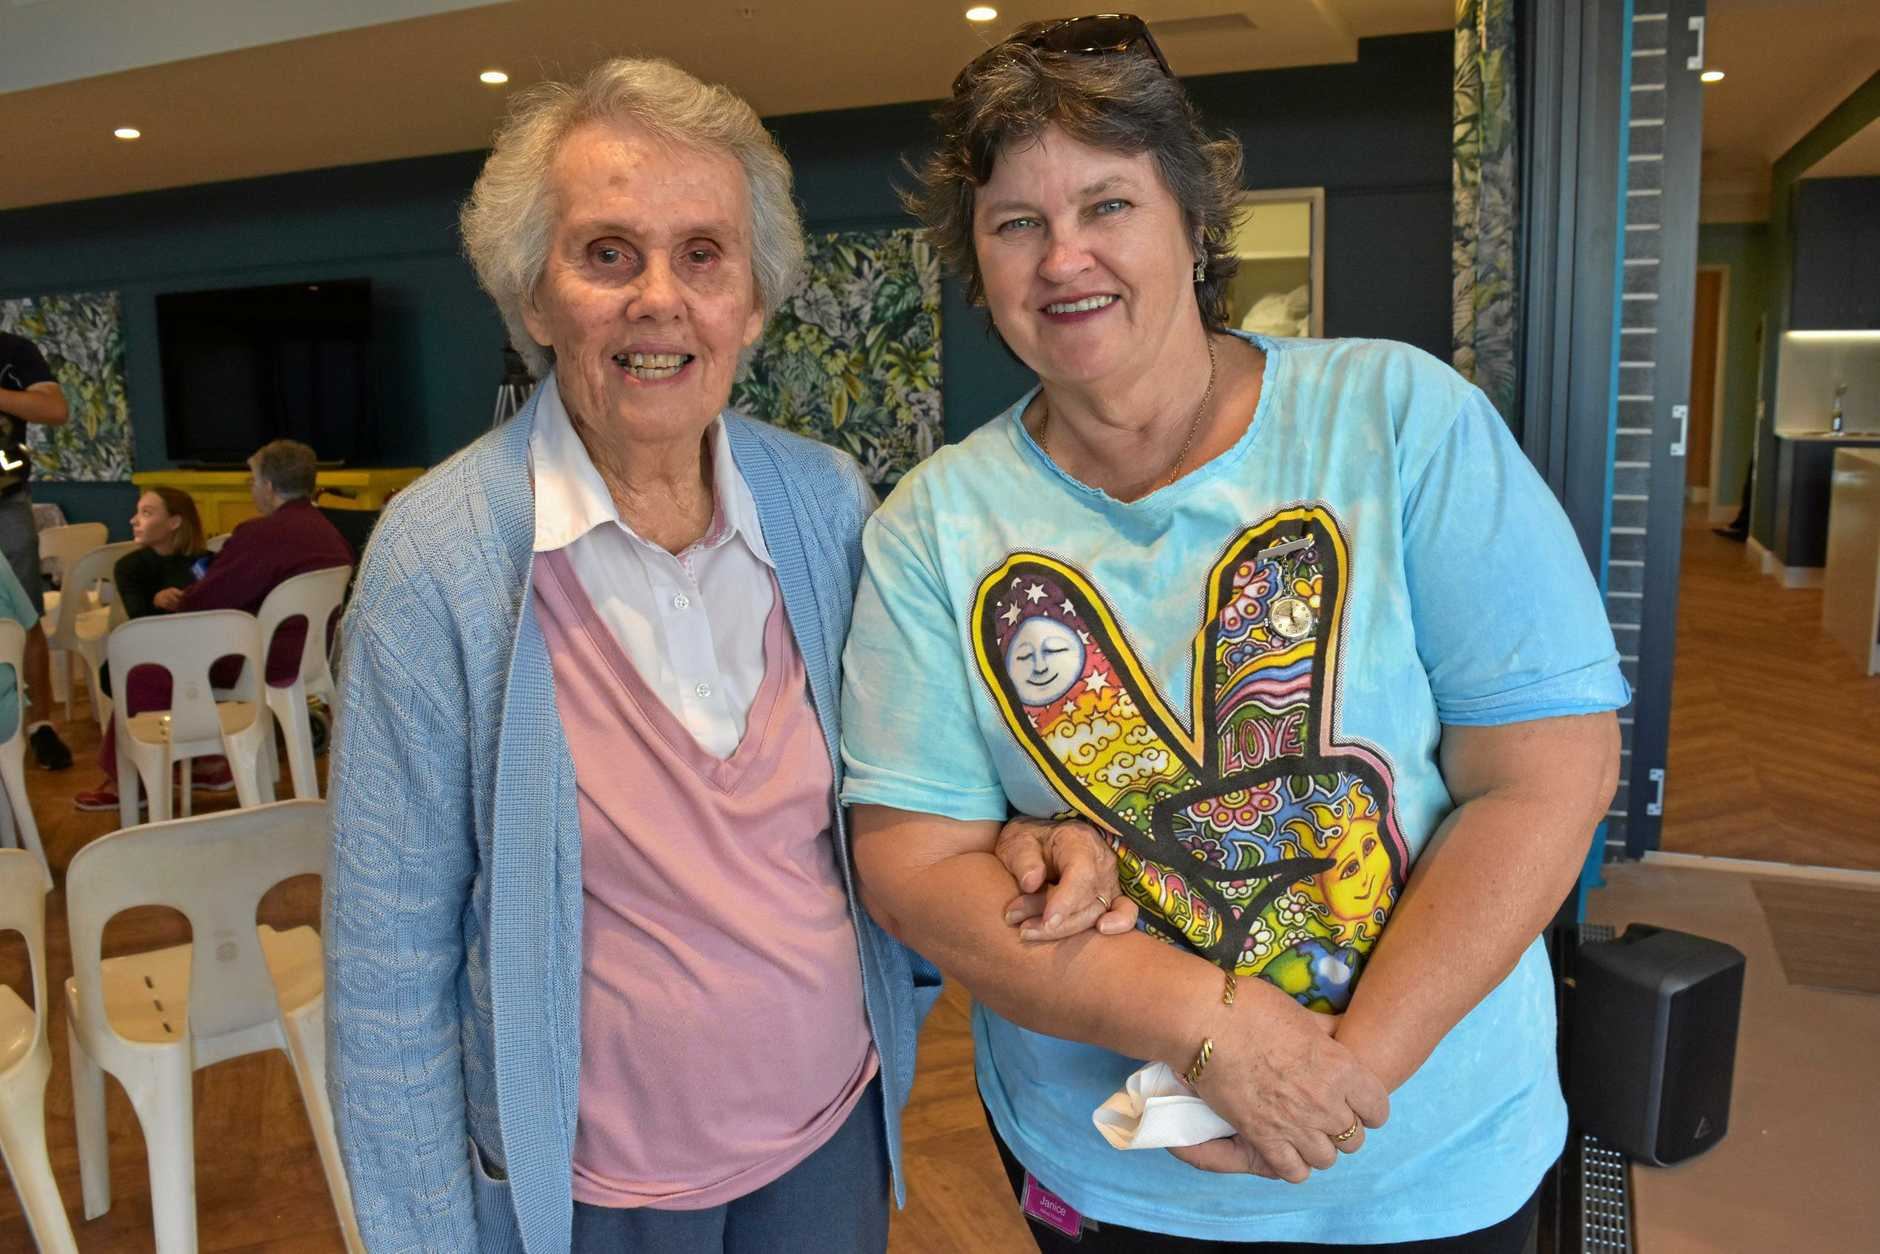 Val Scott will be moving into the new Jacaranda Wing building and Janice Hasthorpe (works at Allied Health at Cooinda)